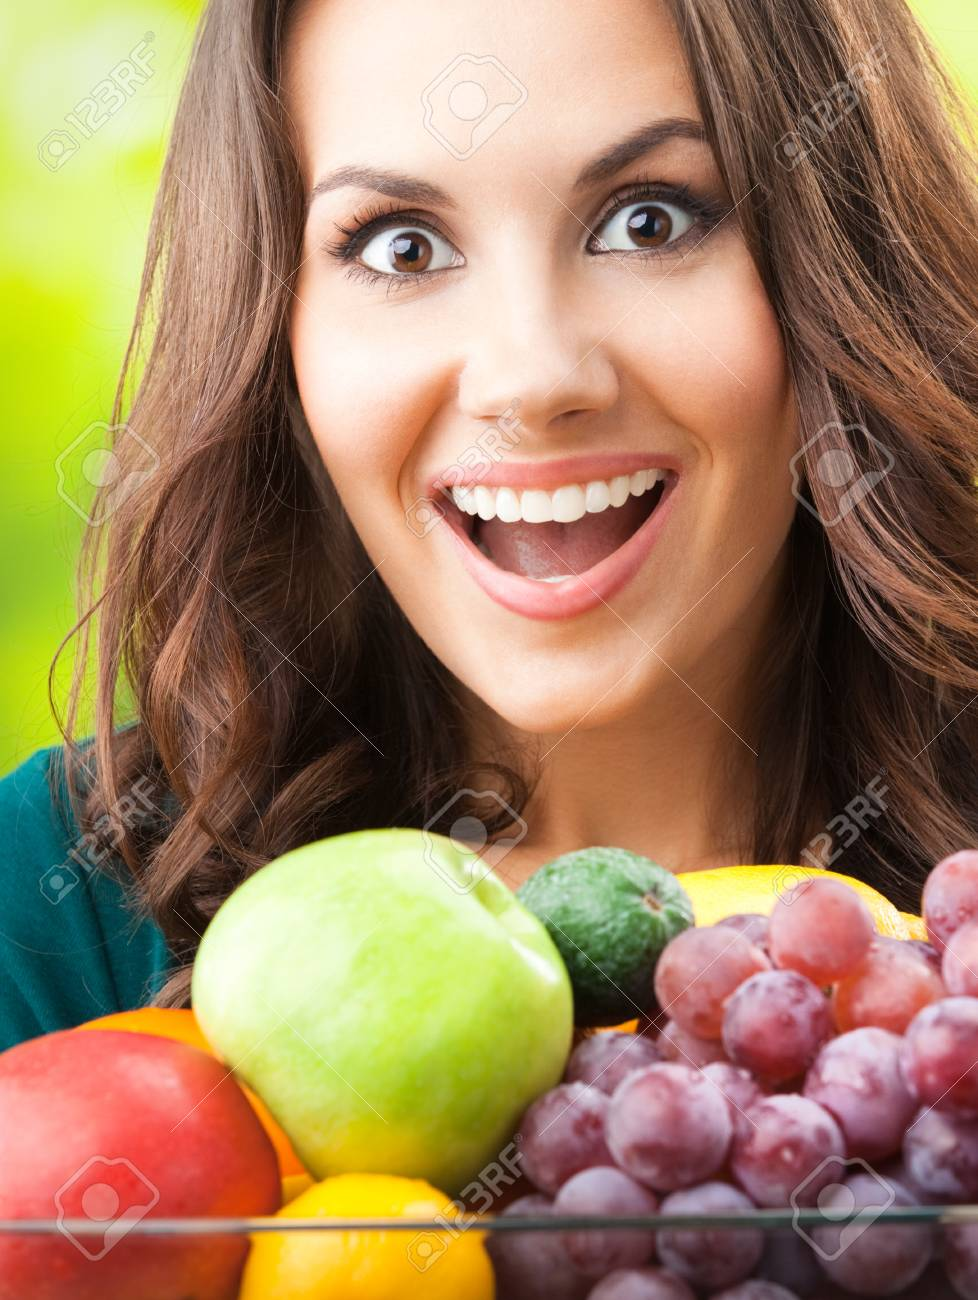 Fruit diet - a guarantee of beauty and health 32